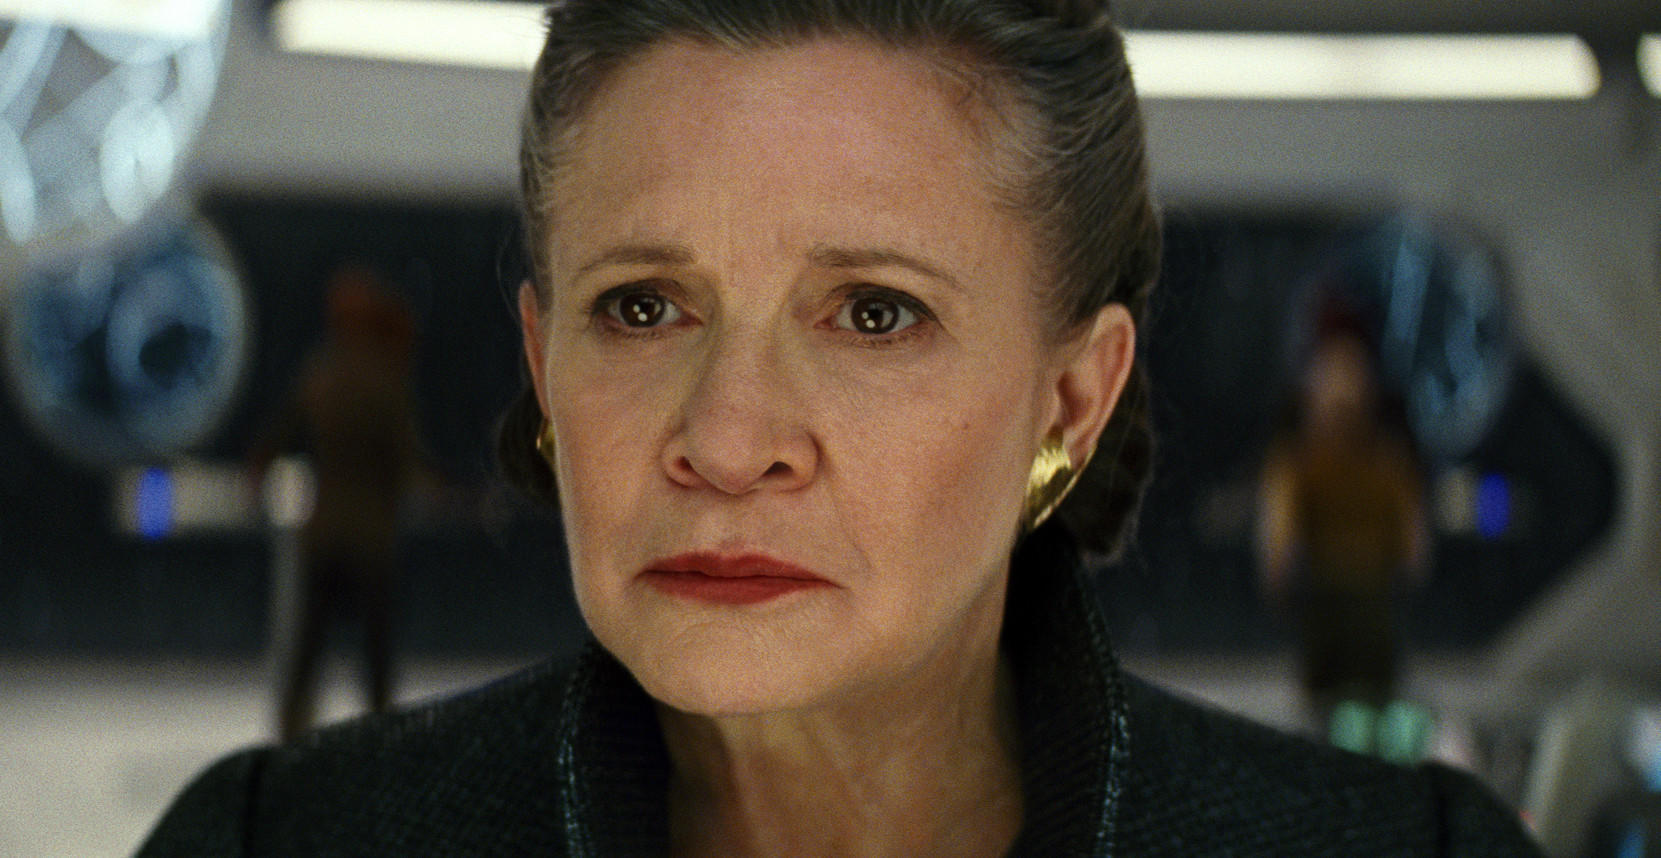 'Star Wars: Episode IX' will officially include Carrie Fisher and Billy Dee Williams